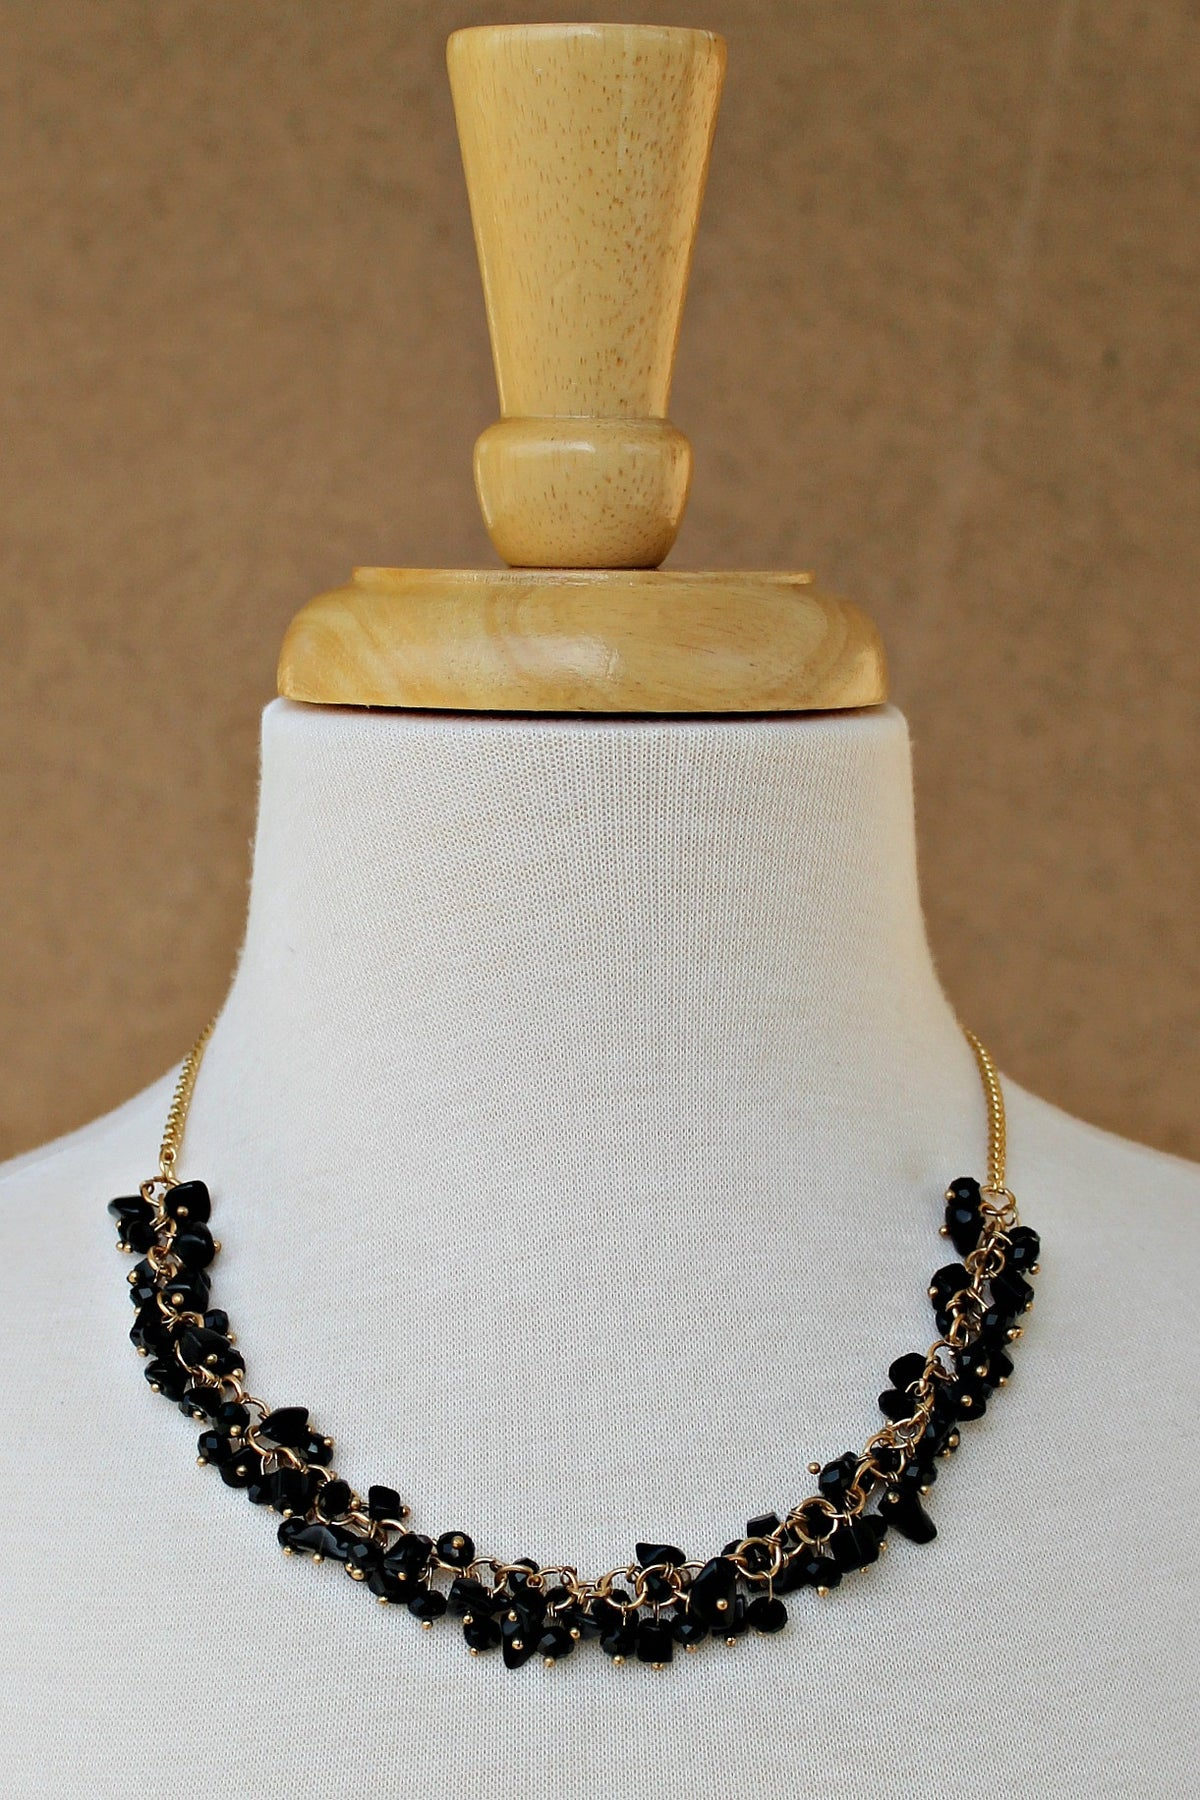 Cluster Chip Beads Necklace, Black